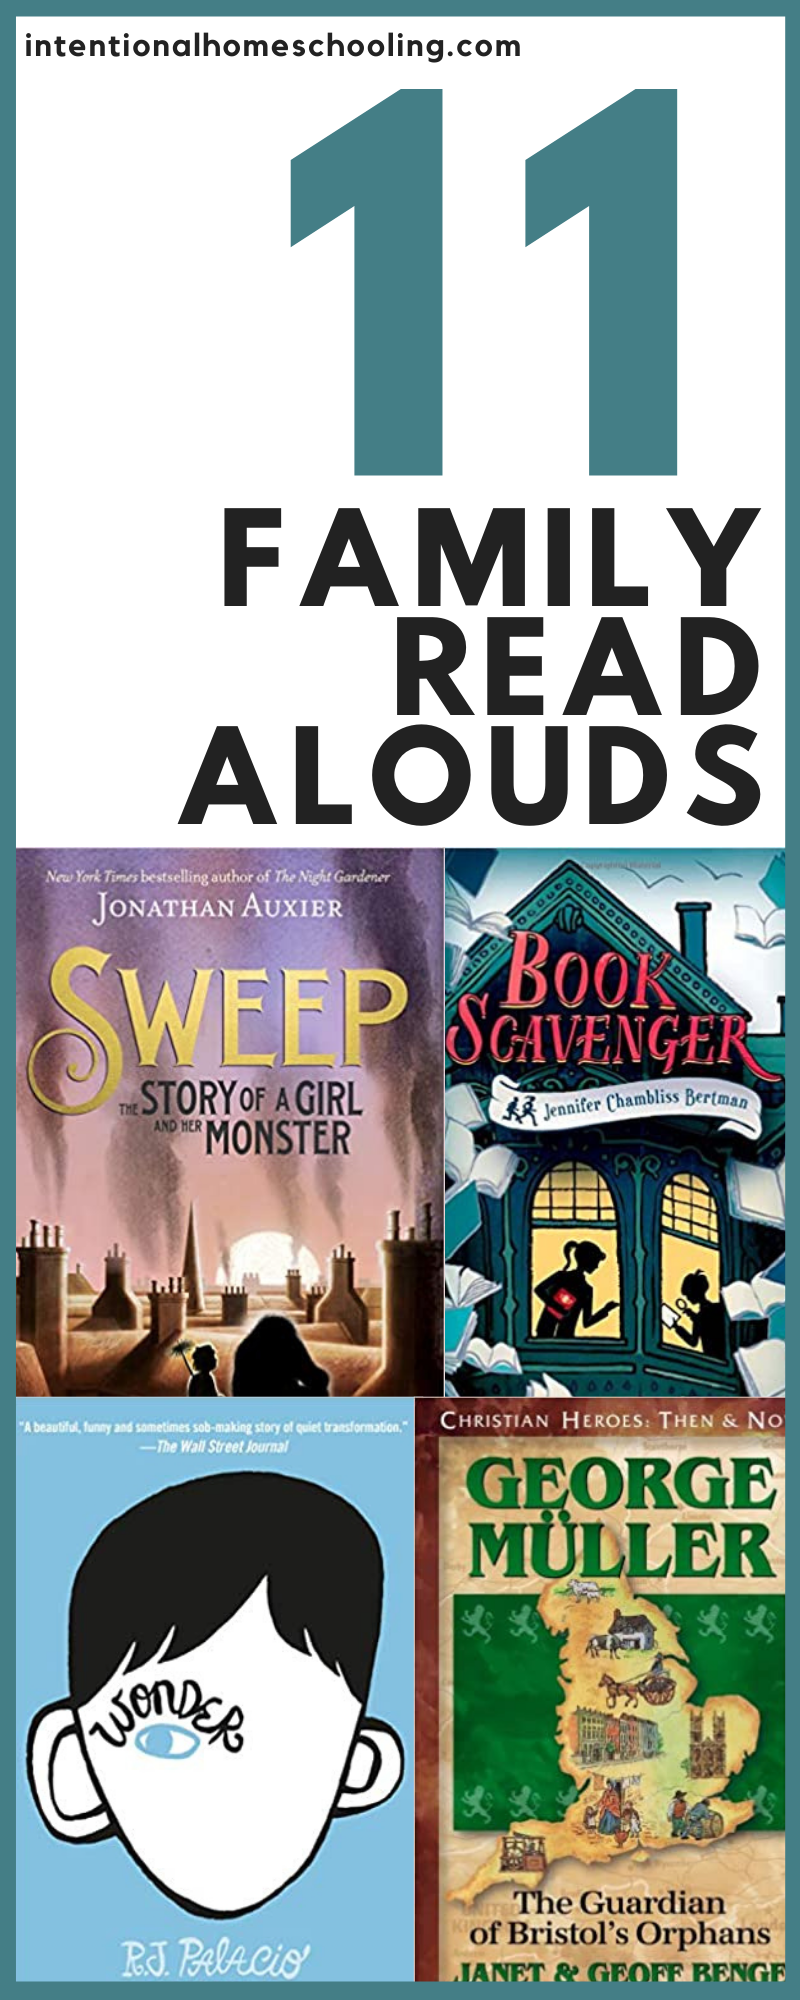 Family Read Alouds we've read recently - middle grade books for the family